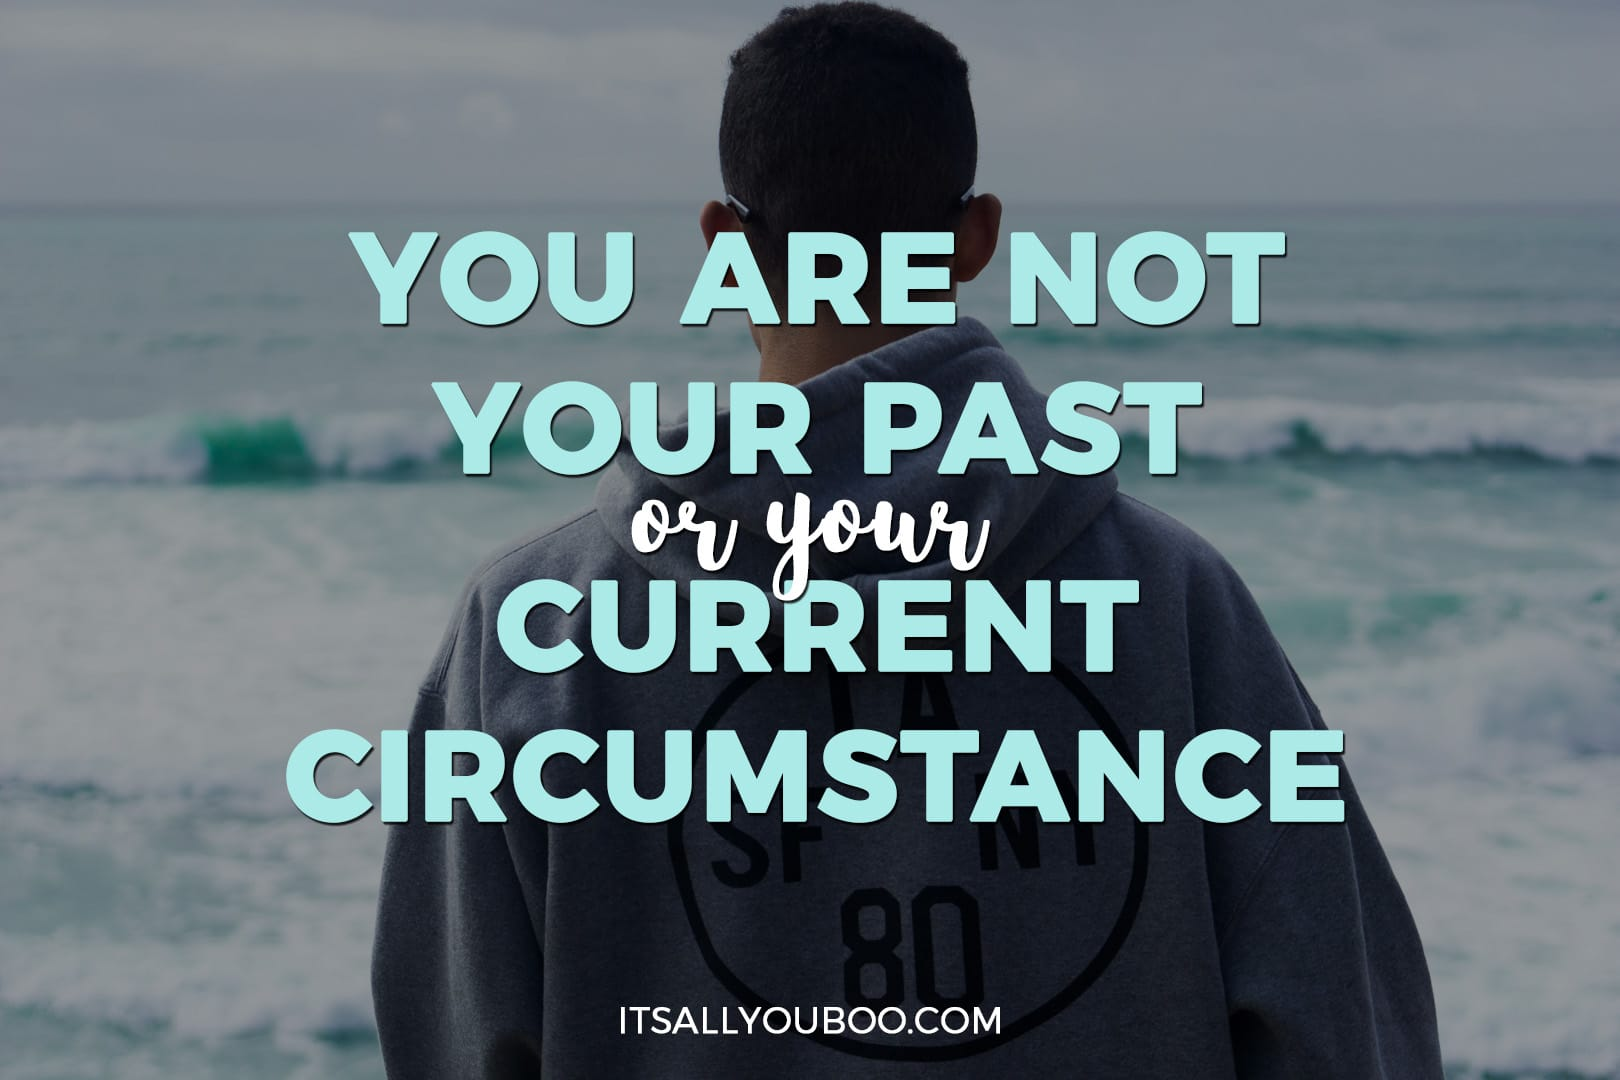 You are not your past, or your current circumstance